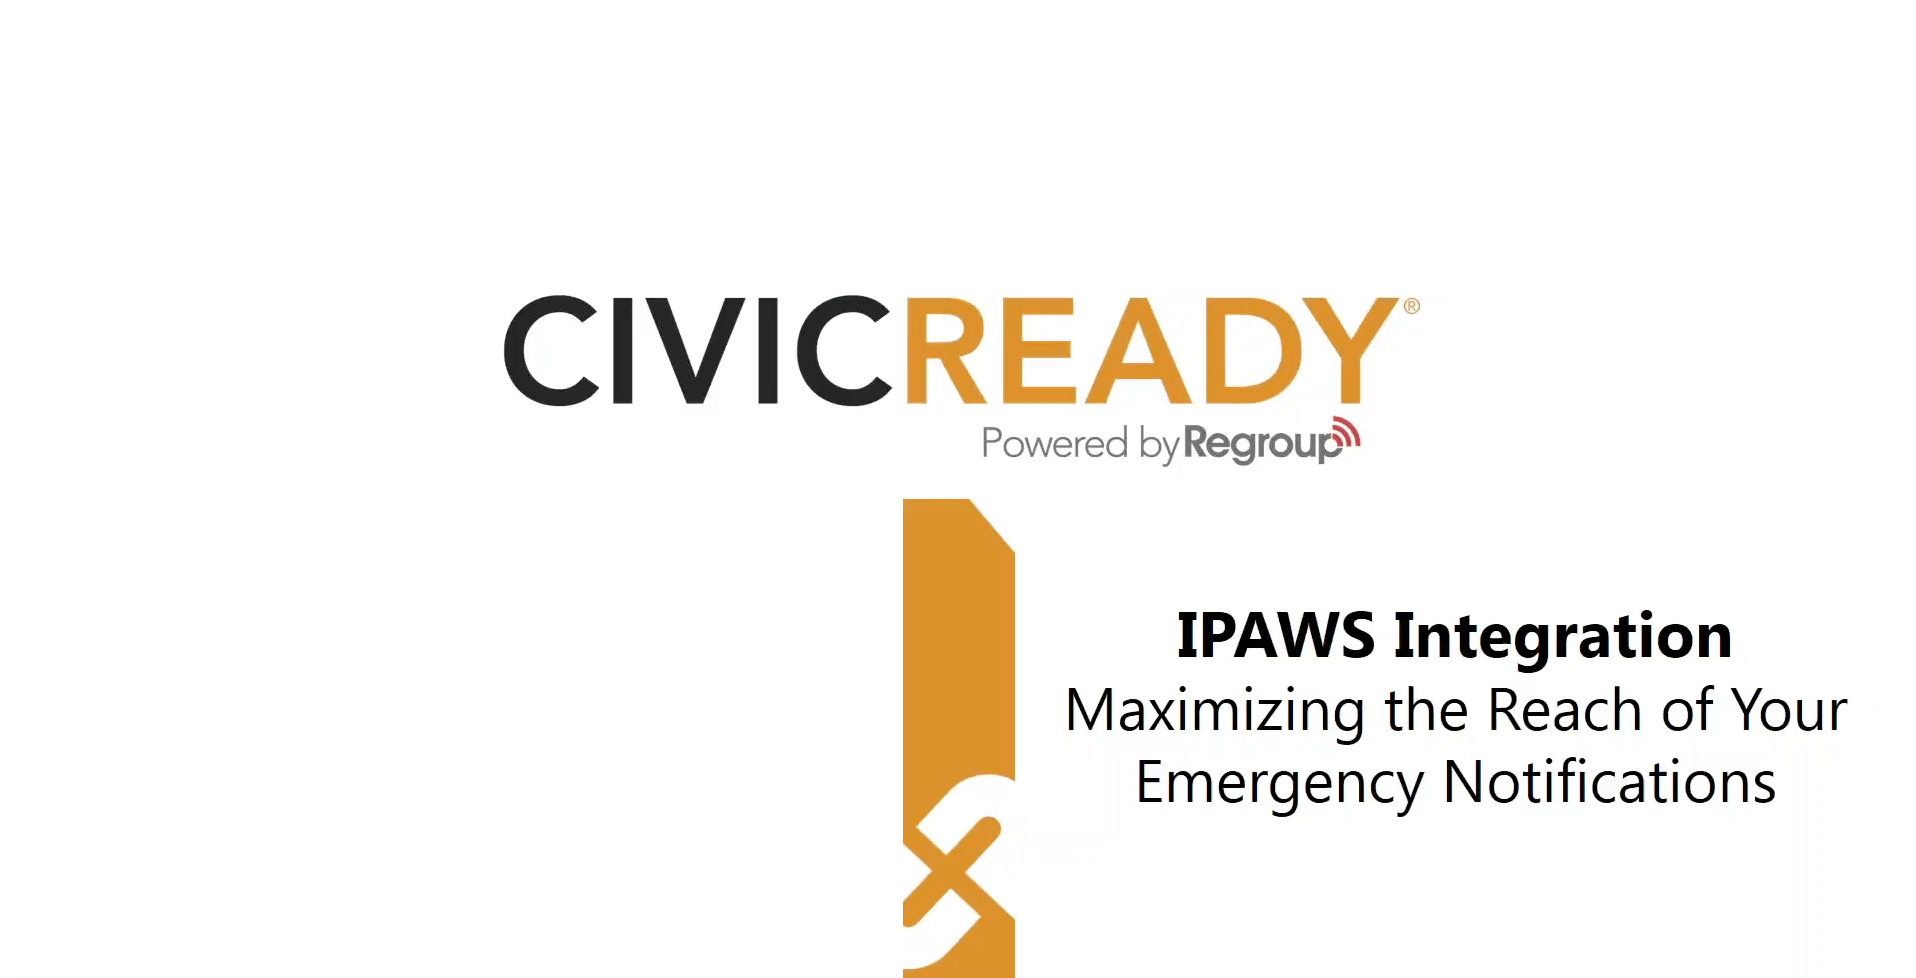 Harness the Life Saving Power of IPAWS